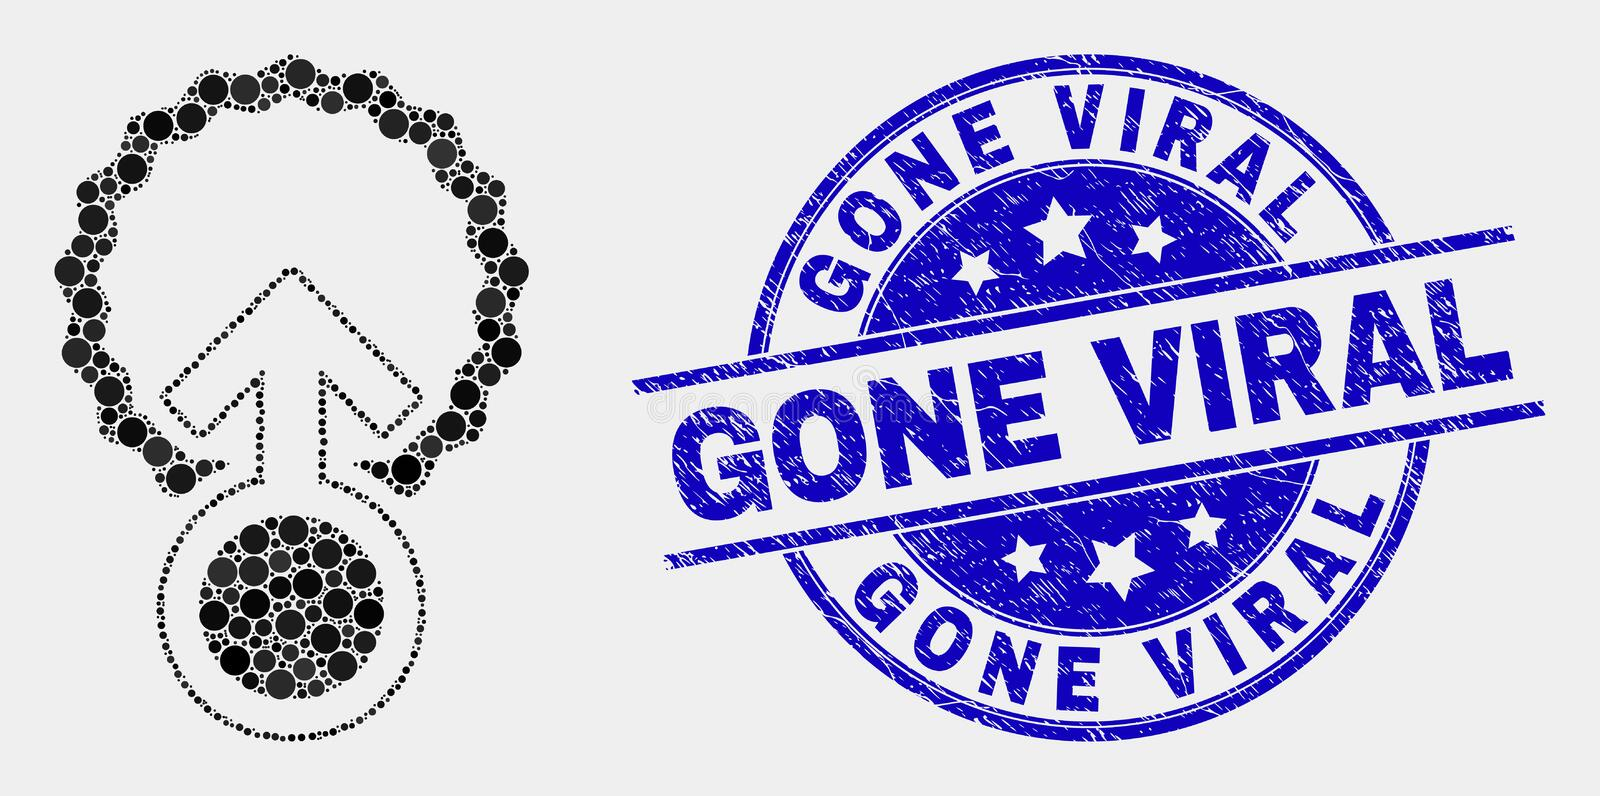 Vector Dotted Insemination Icon and Grunge Gone Viral Seal. Pixel insemination mosaic icon and Gone Viral seal stamp. Blue vector round textured watermark with stock illustration